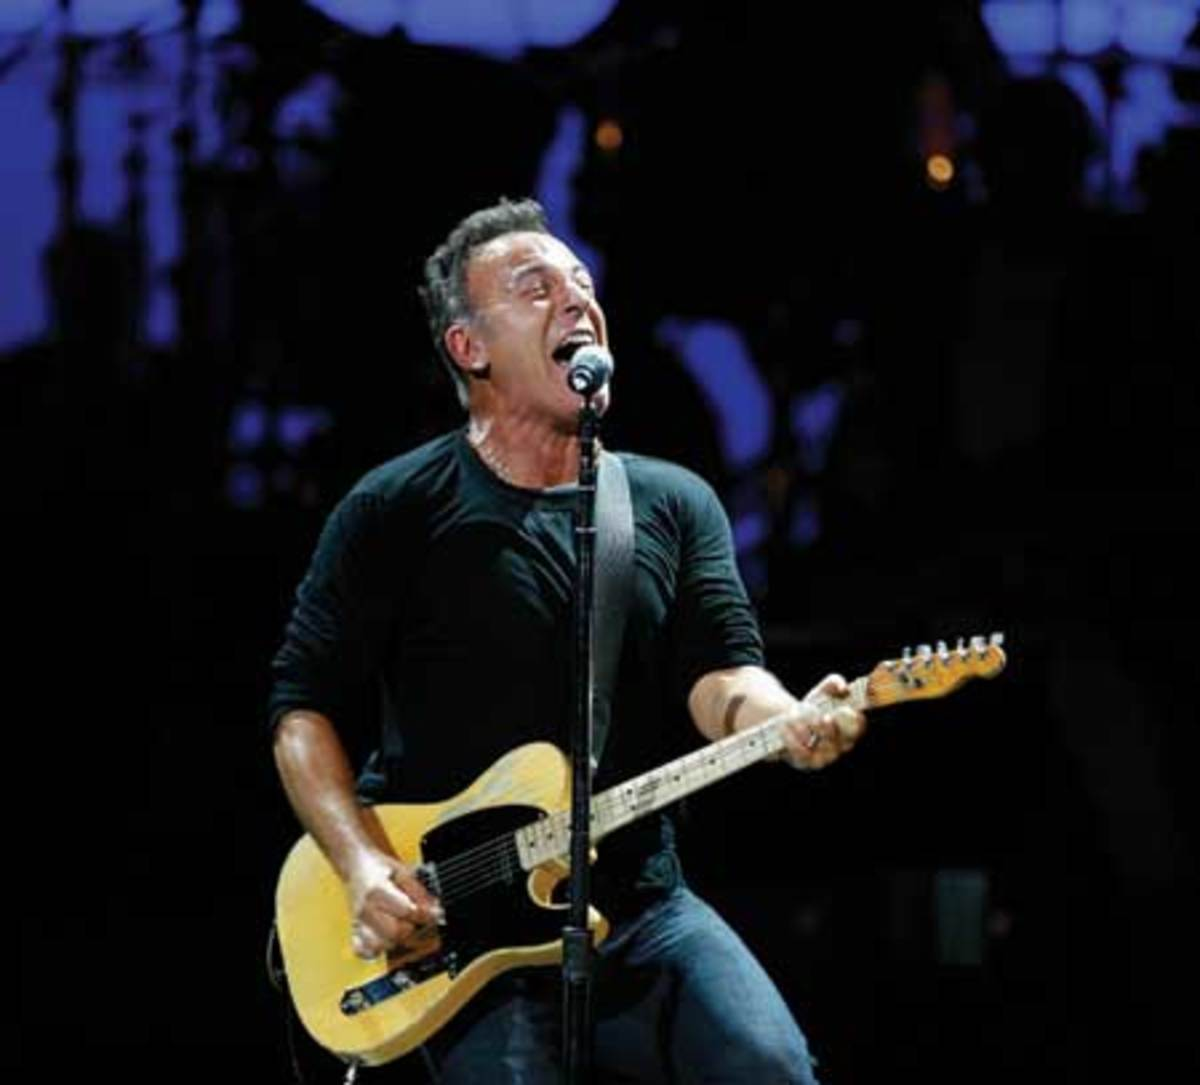 Bruce Springsteen and his E Street Band bring the same intensity onstage now, as shown at this performance at New York's Carnegie Hall on May 13, 2010, as 40 years ago. (AP Photo/Jason DeCrow).